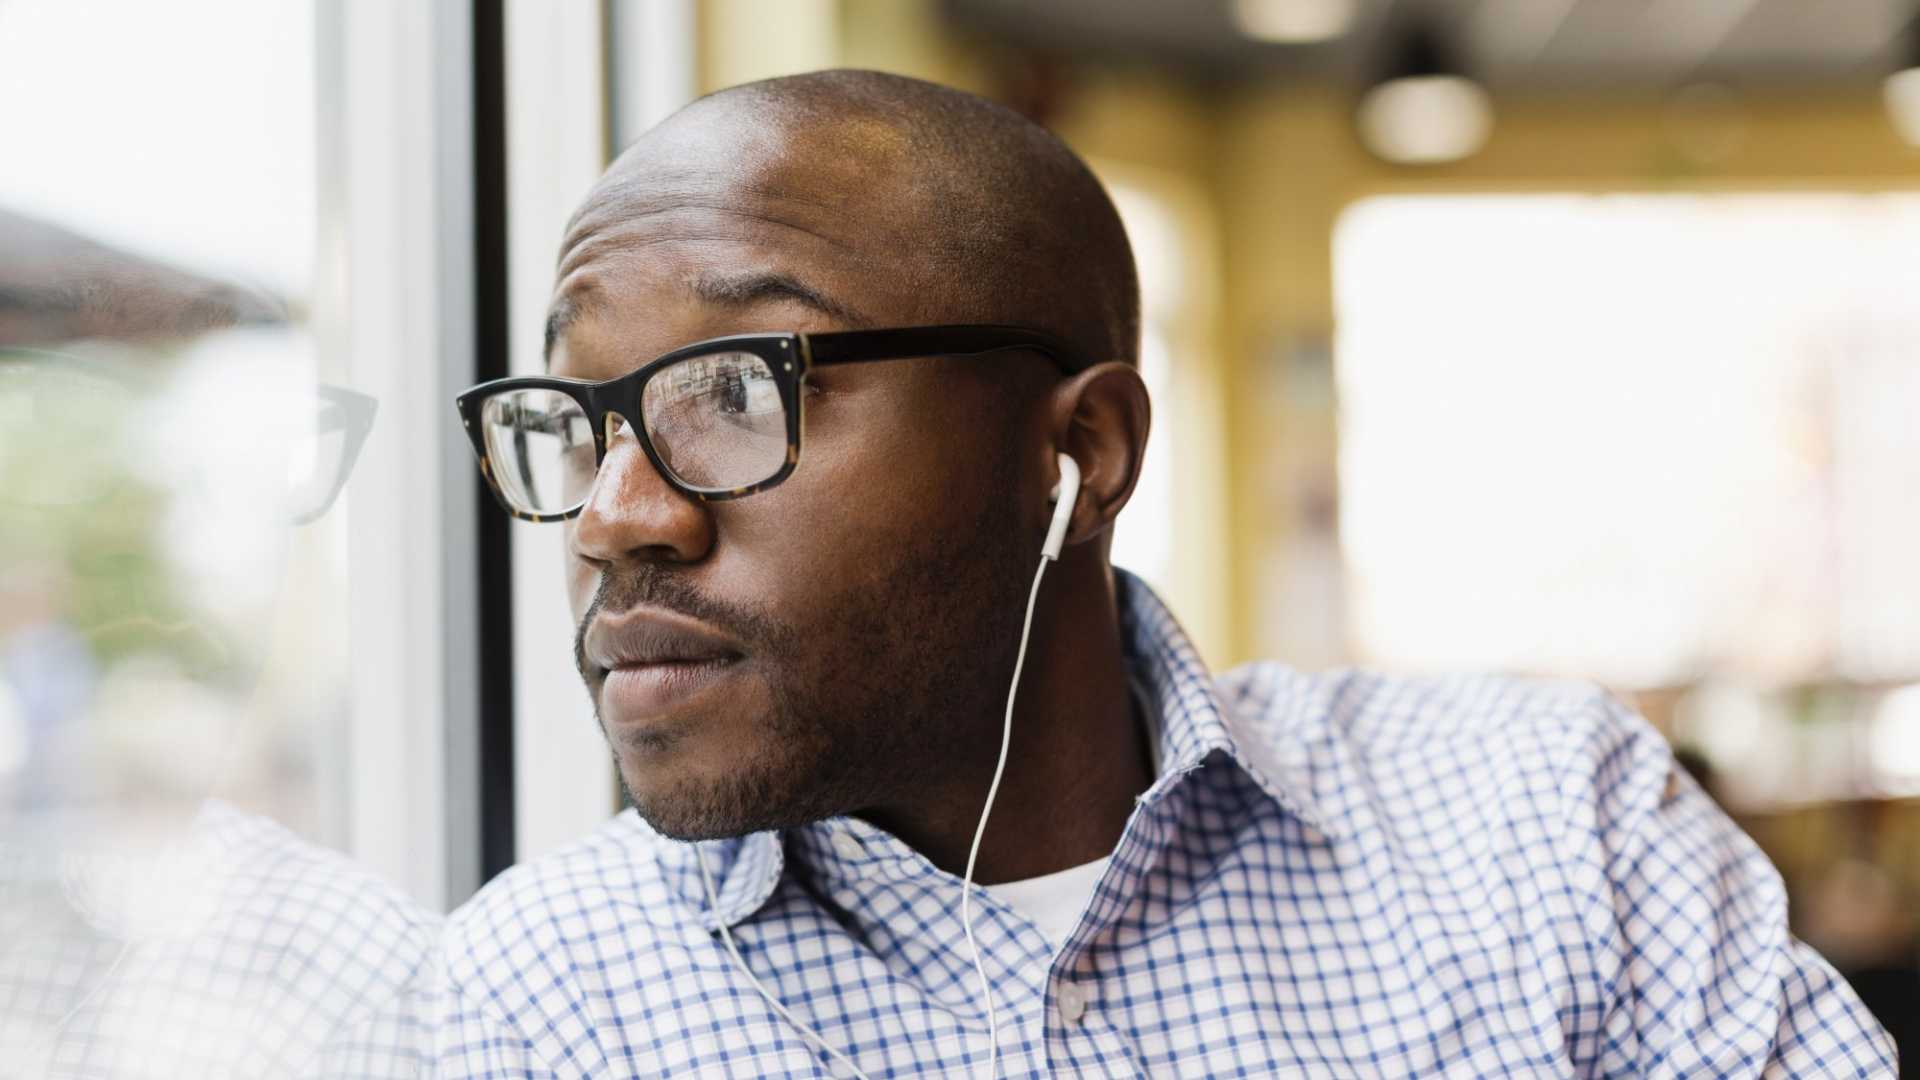 7 Digital Marketing Podcasts That Successful Entrepreneurs Listen To